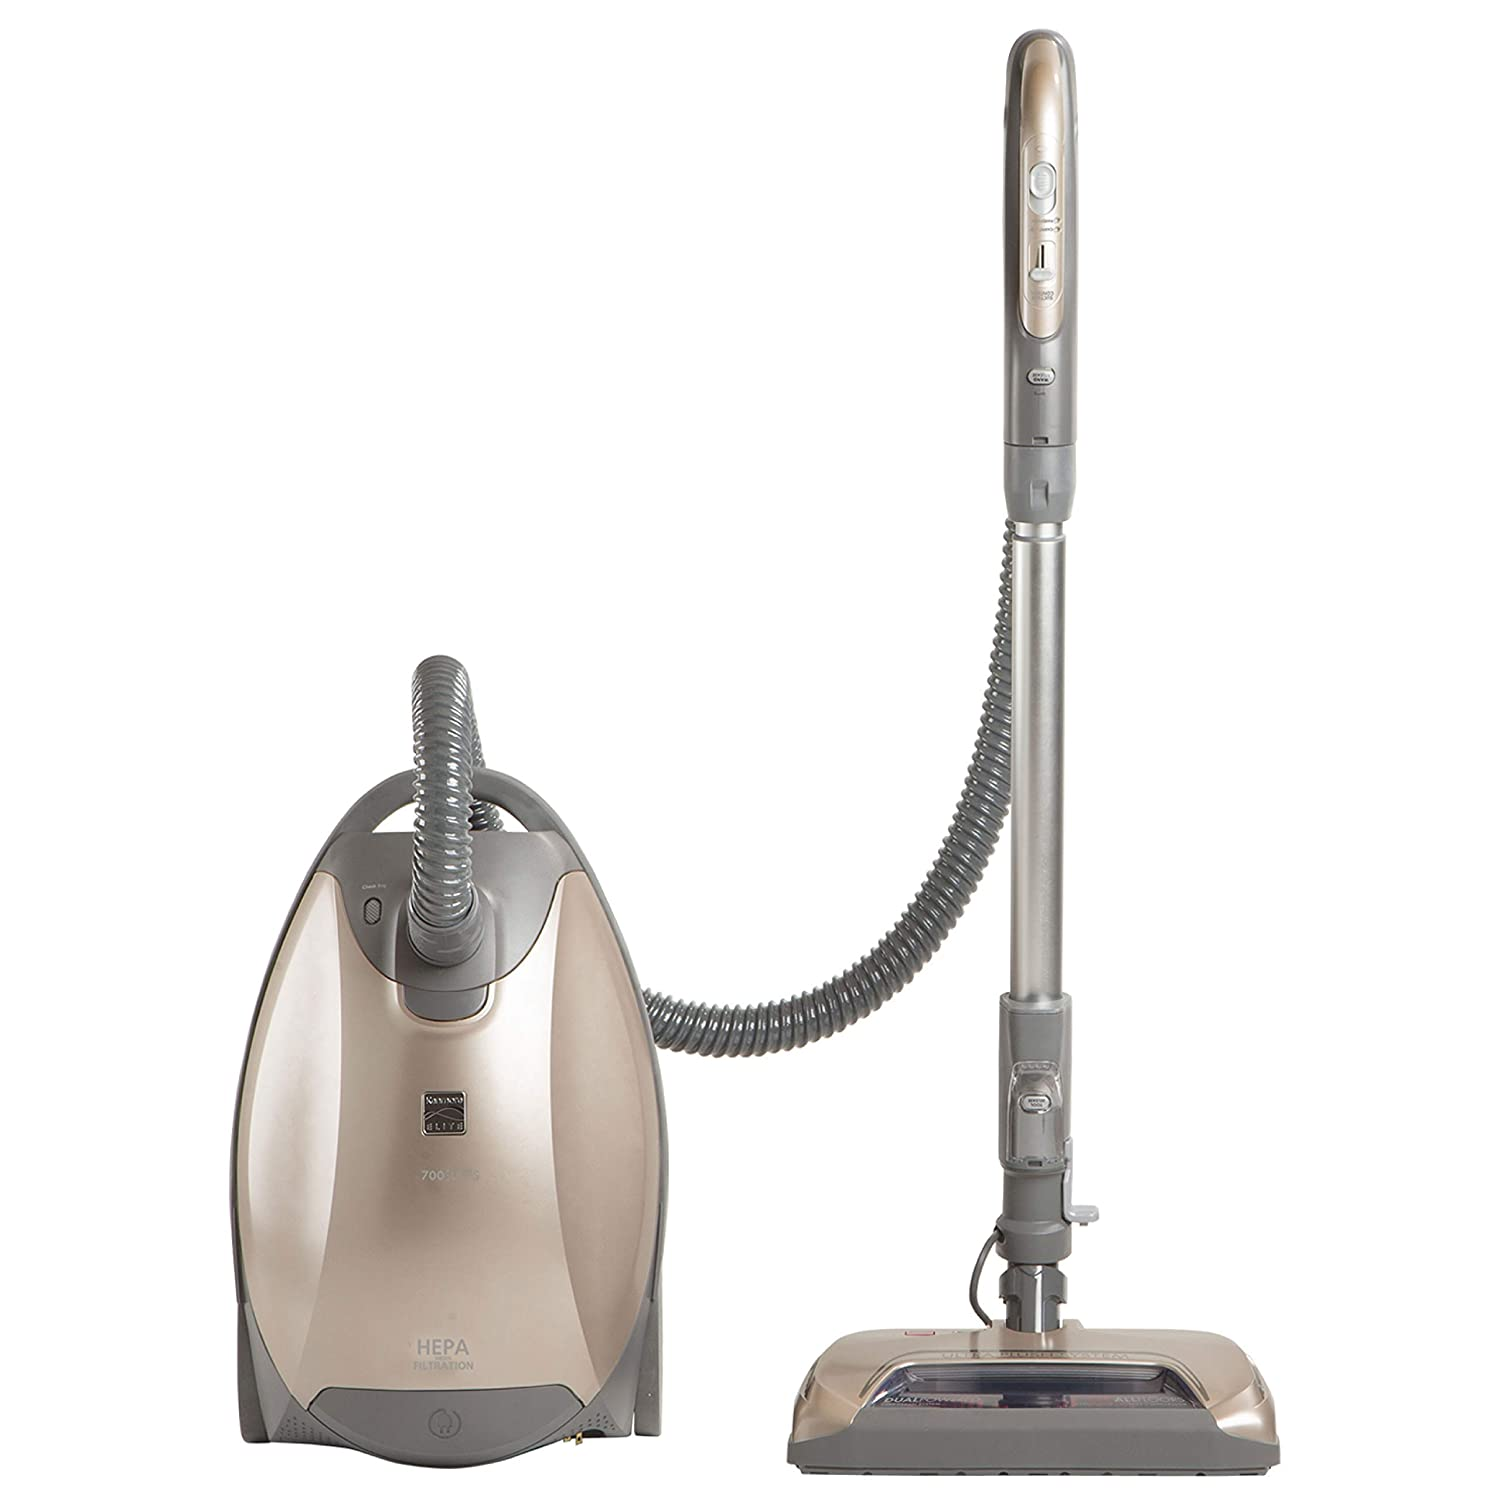 Kenmore Elite 81714 Pet Friendly Ultra Plush Lightweight Bagged Canister Vacuum with Pet PowerMate, HEPA, Extended Telescoping Wand, Retractable Cord,and 3 Cleaning Tools-Champagne (Renewed)